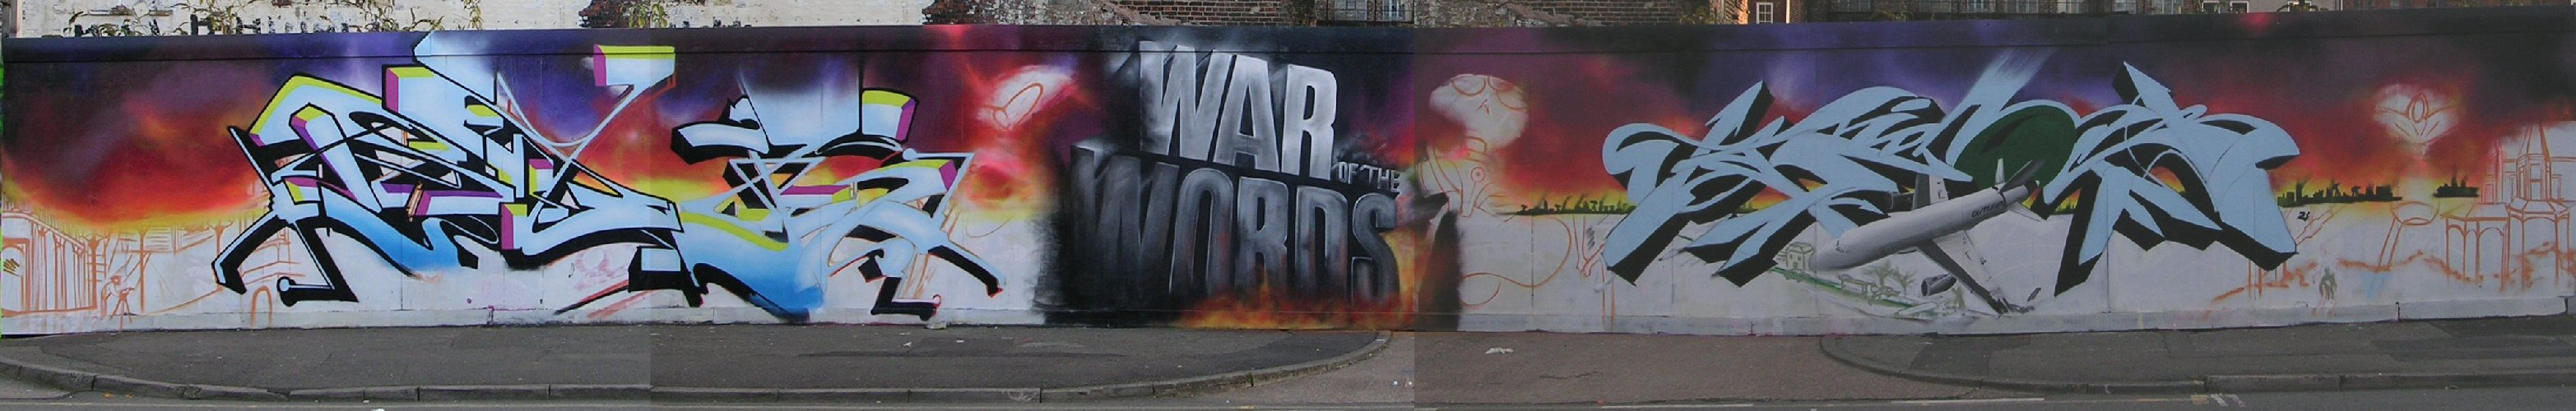 War of Words panorama 27/10/12